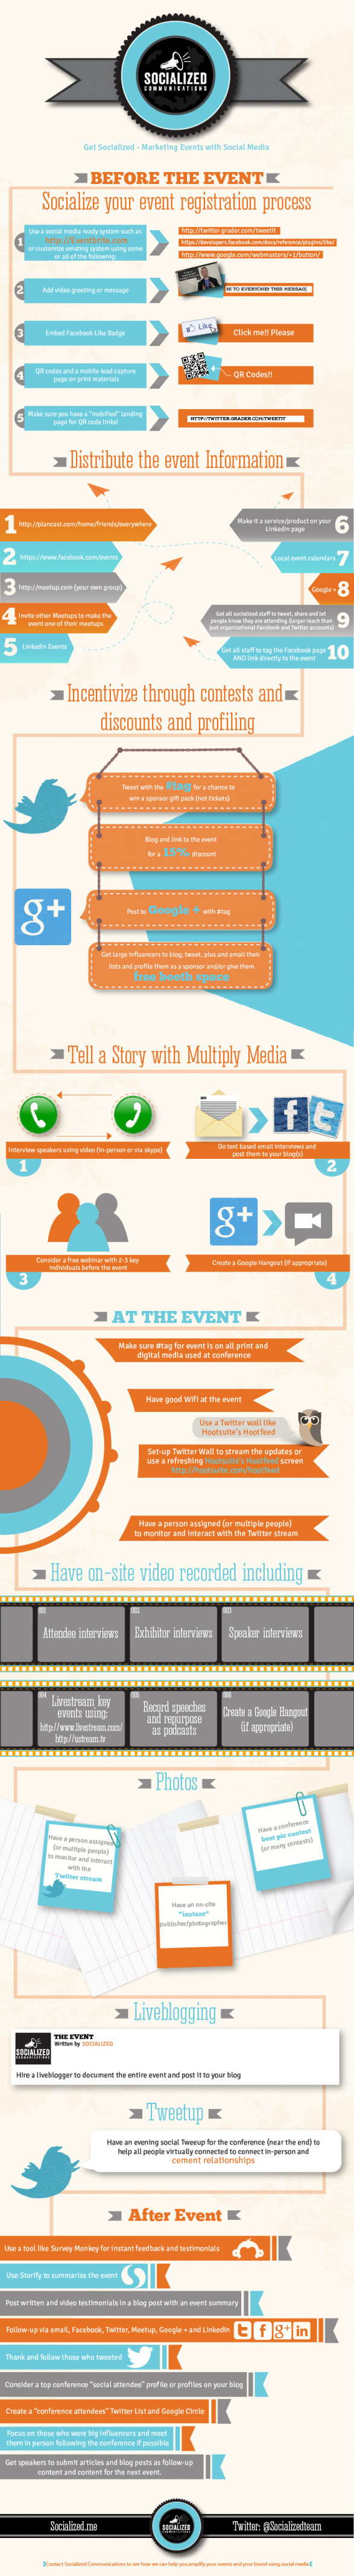 Event Marketing: Awesomely Helpful Infographic from Socialized